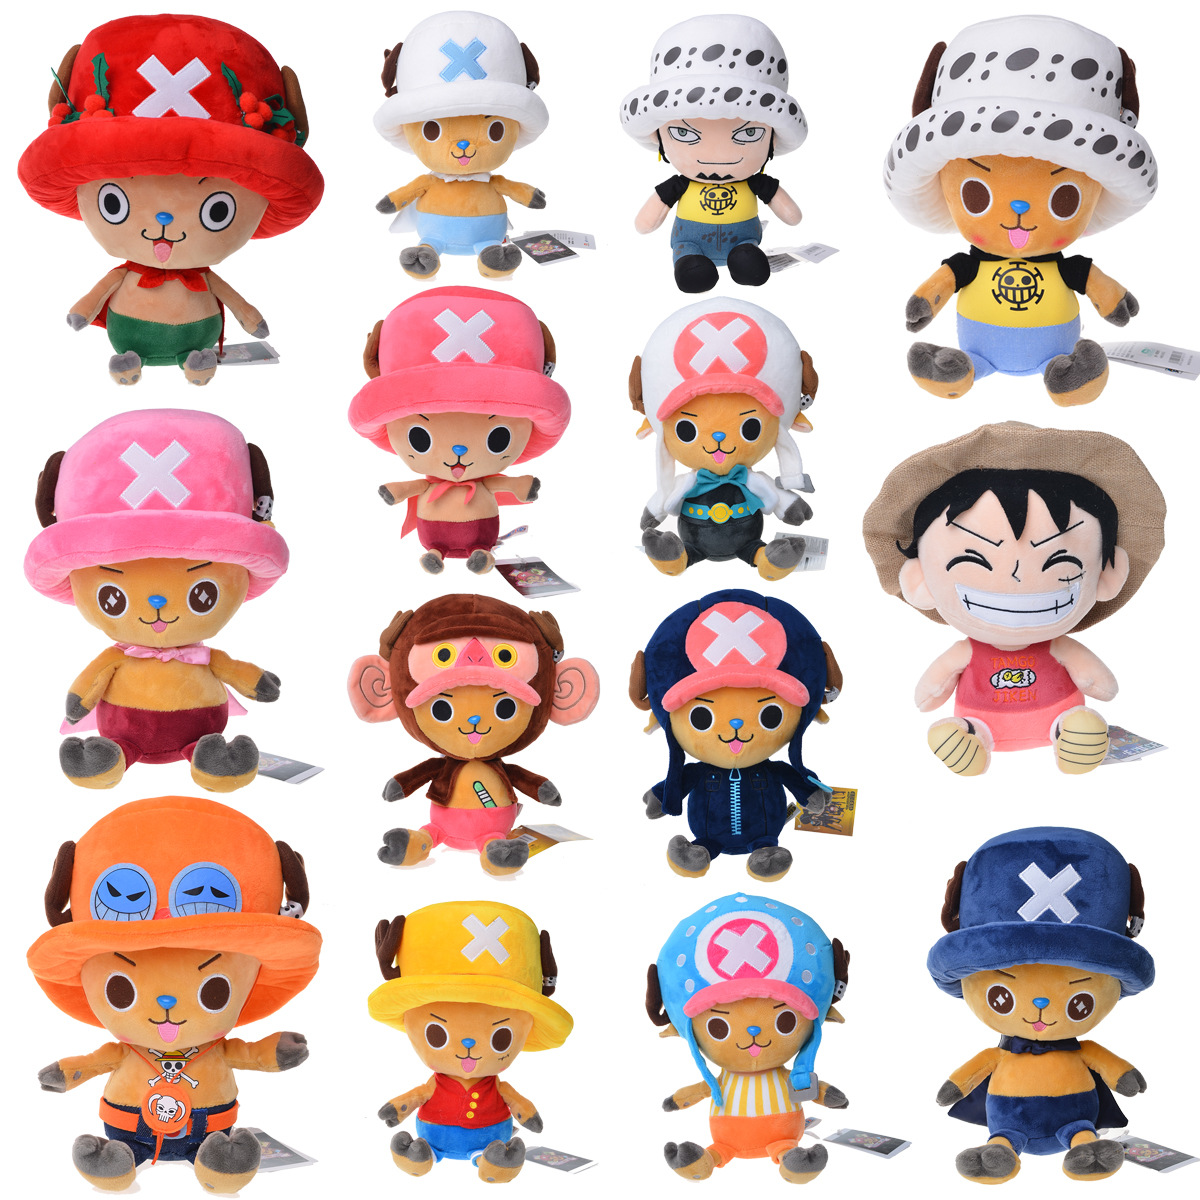 Stuffed One Piece Plush Doll Soft PP Cotton Cute Pet Cushion Luffy Chopper Cosplay Law Sabo Sanji Plush Toys Natural One Piece image